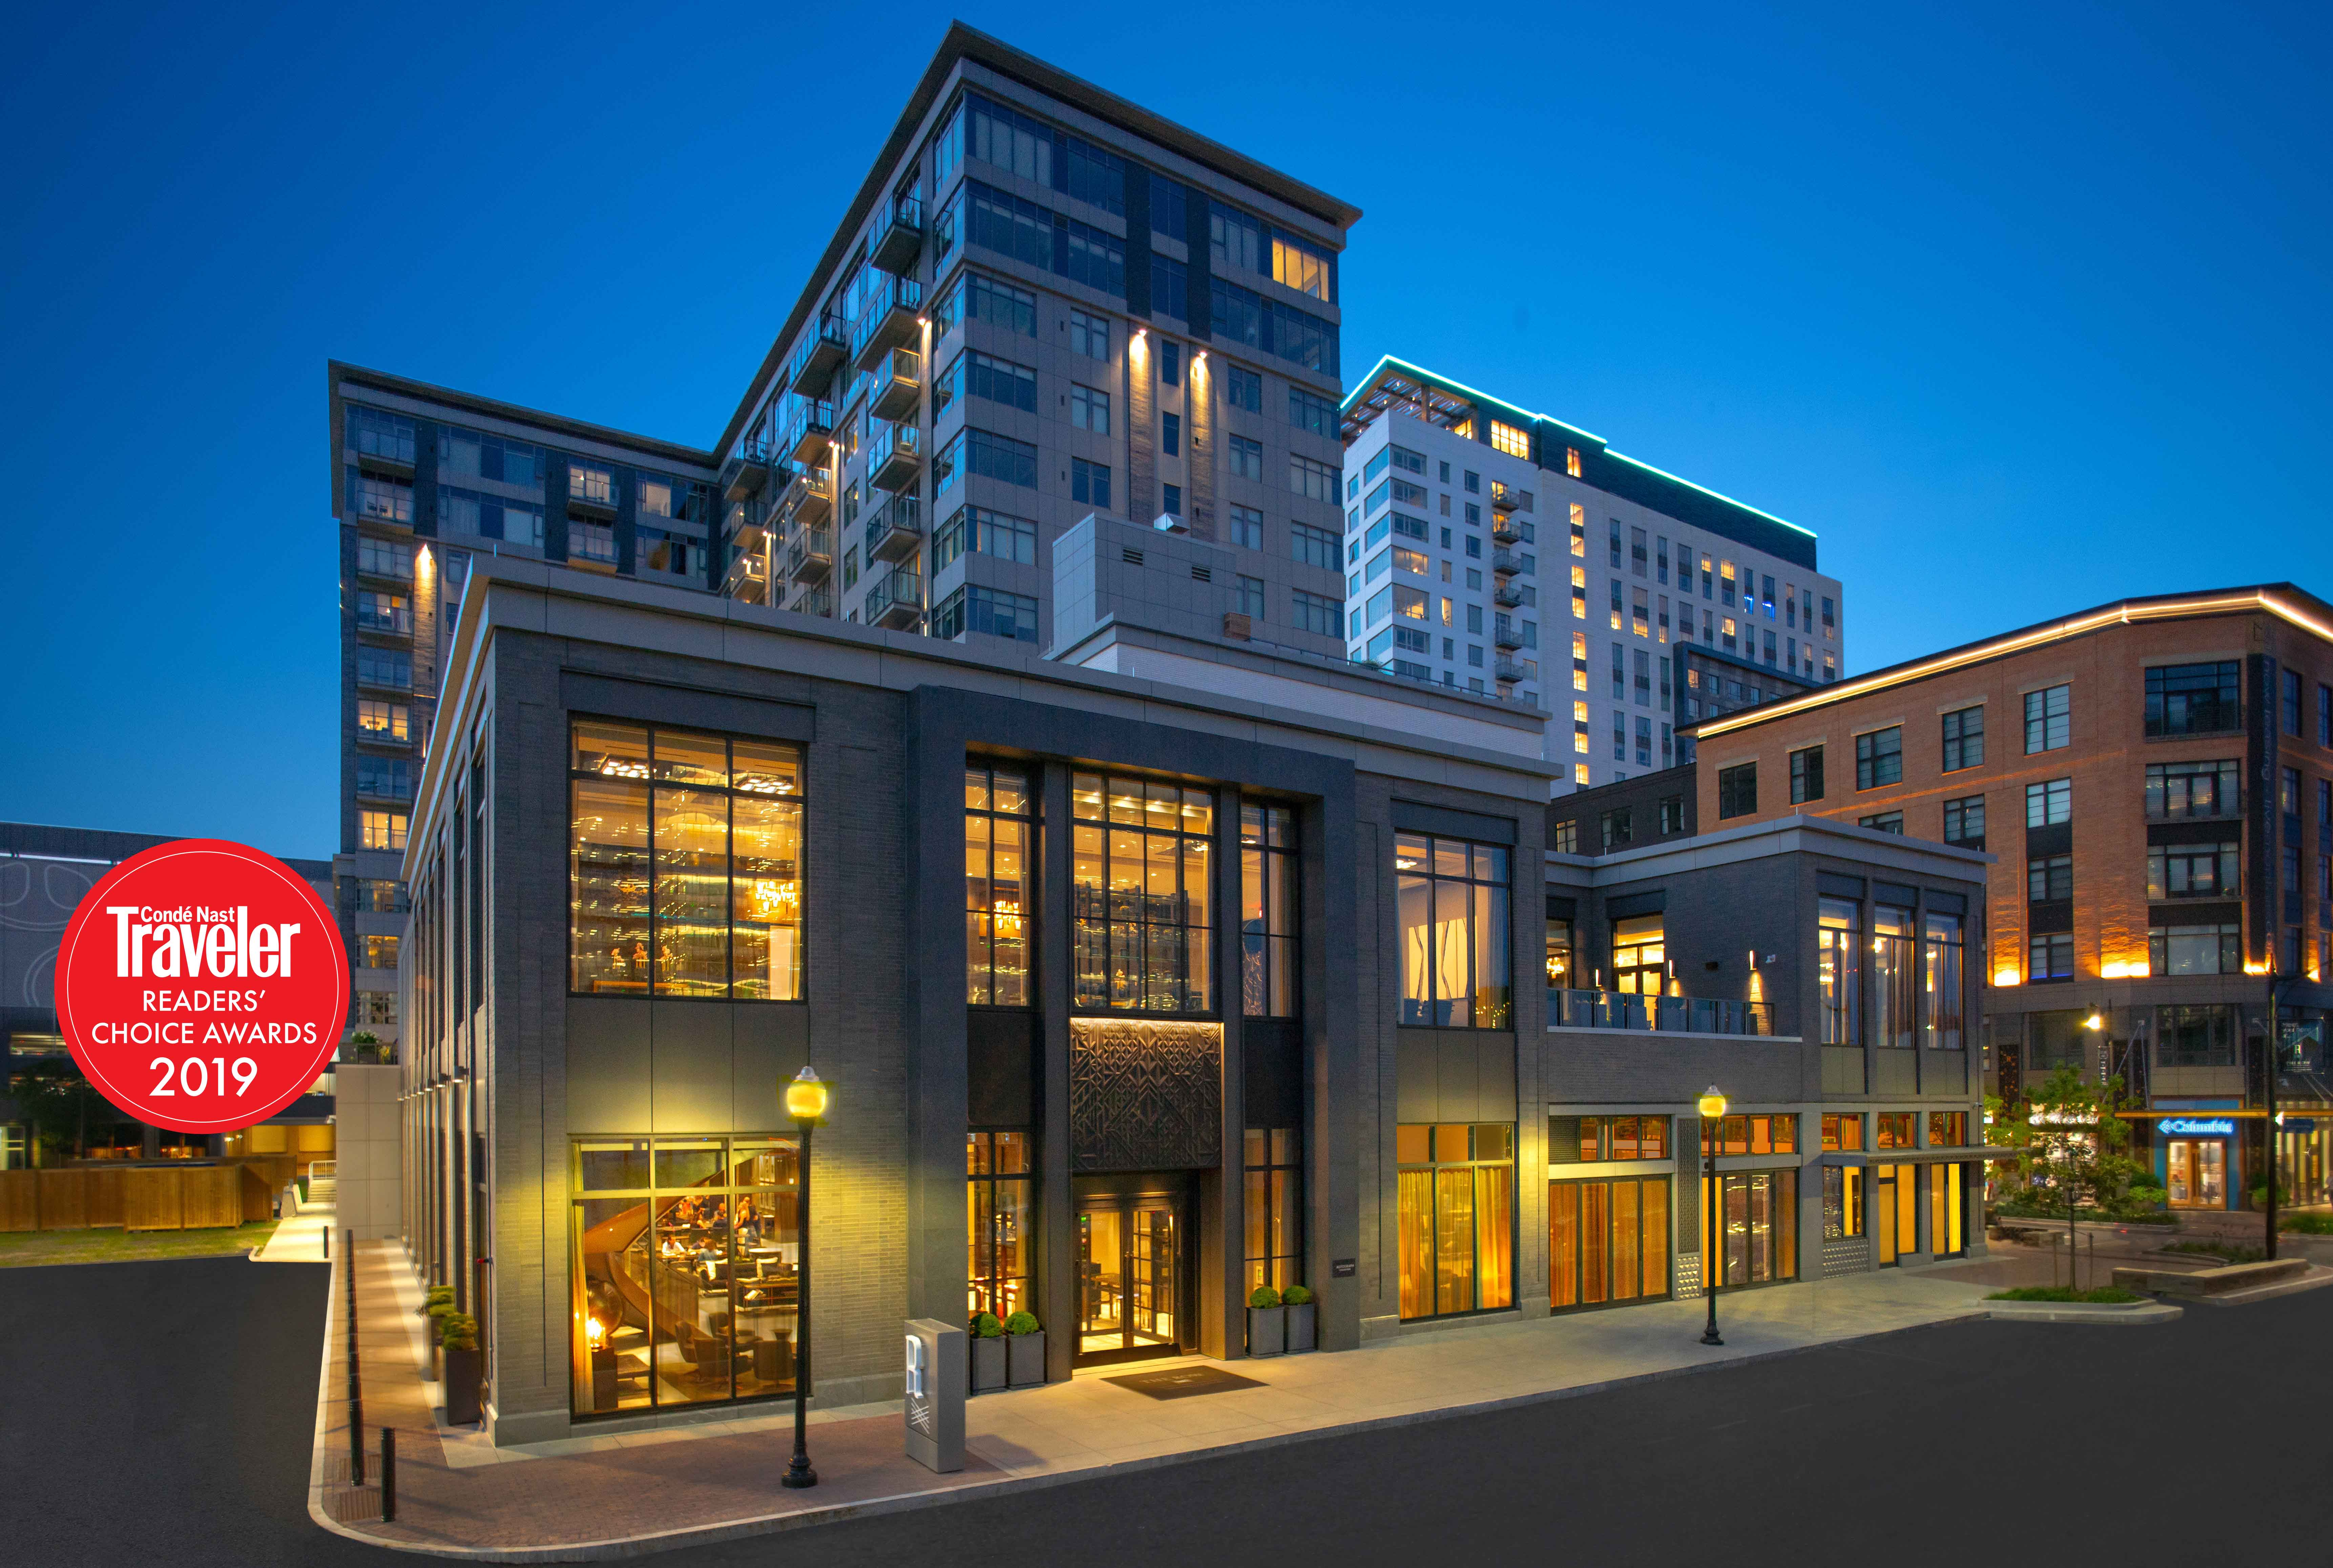 Hotel exterior at night with Conde Nast Traveler Readers' Choice